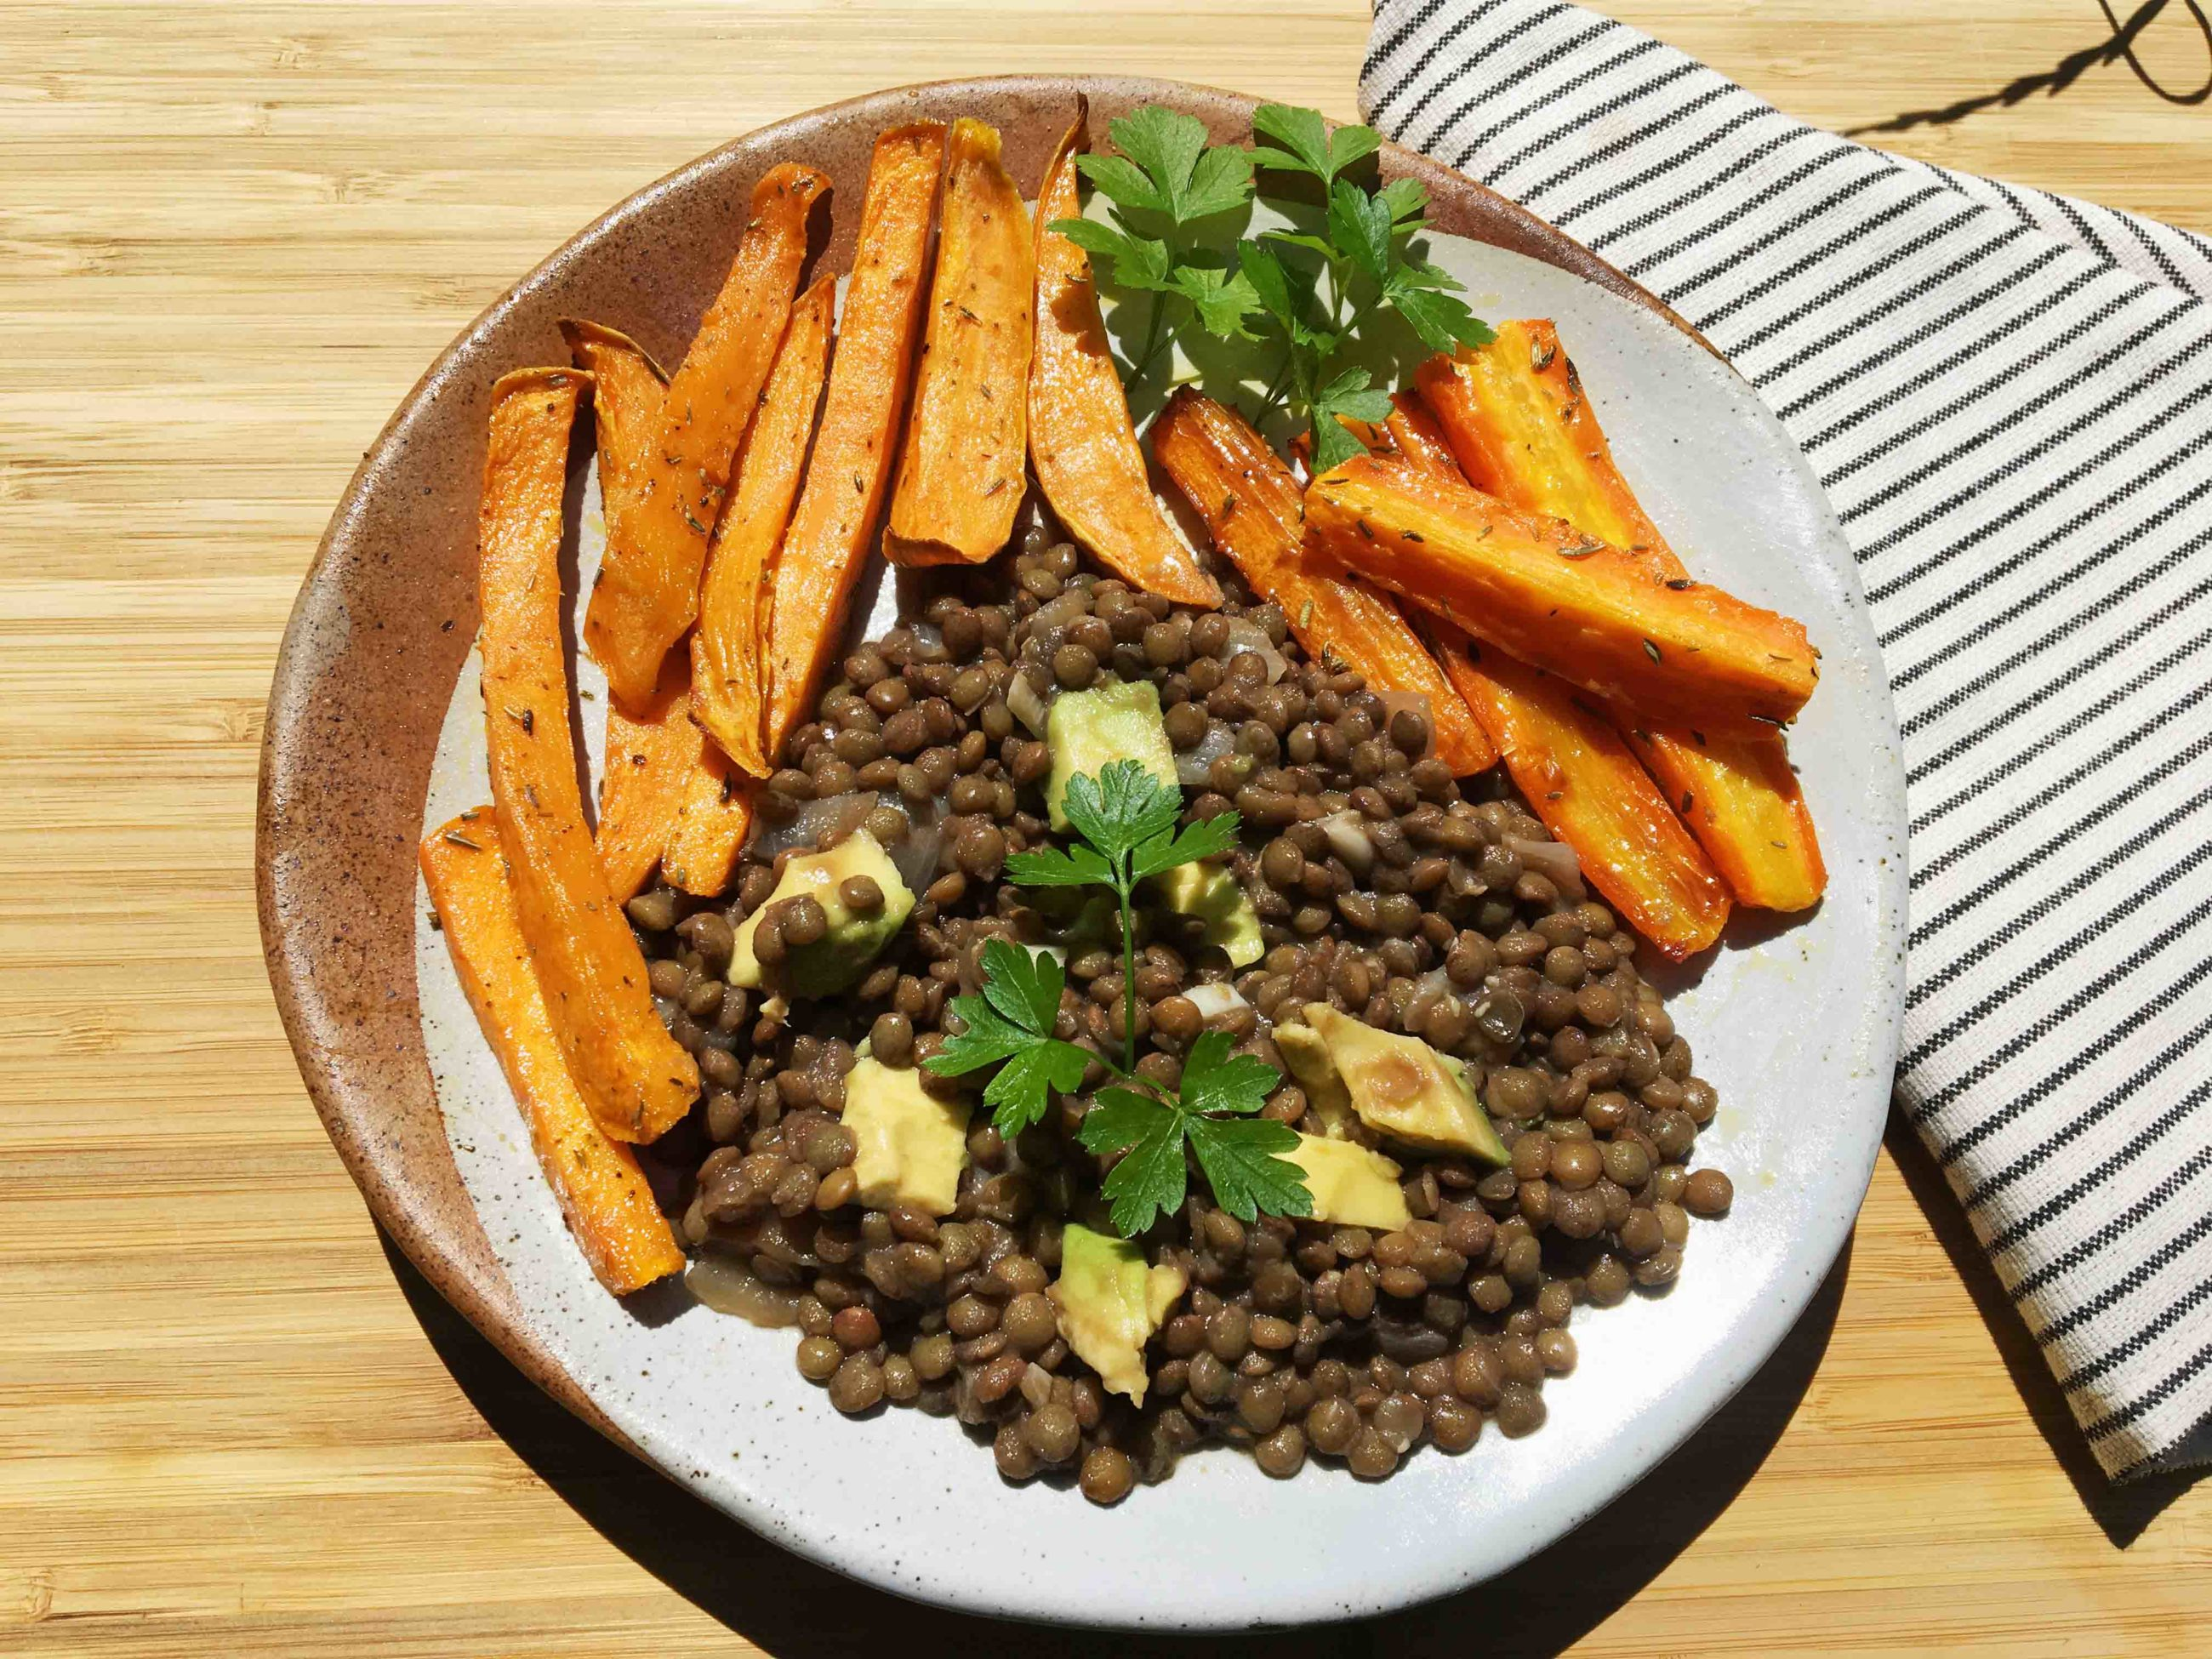 Lentil Salad with Sweet Potato Fries & Roasted Carrots